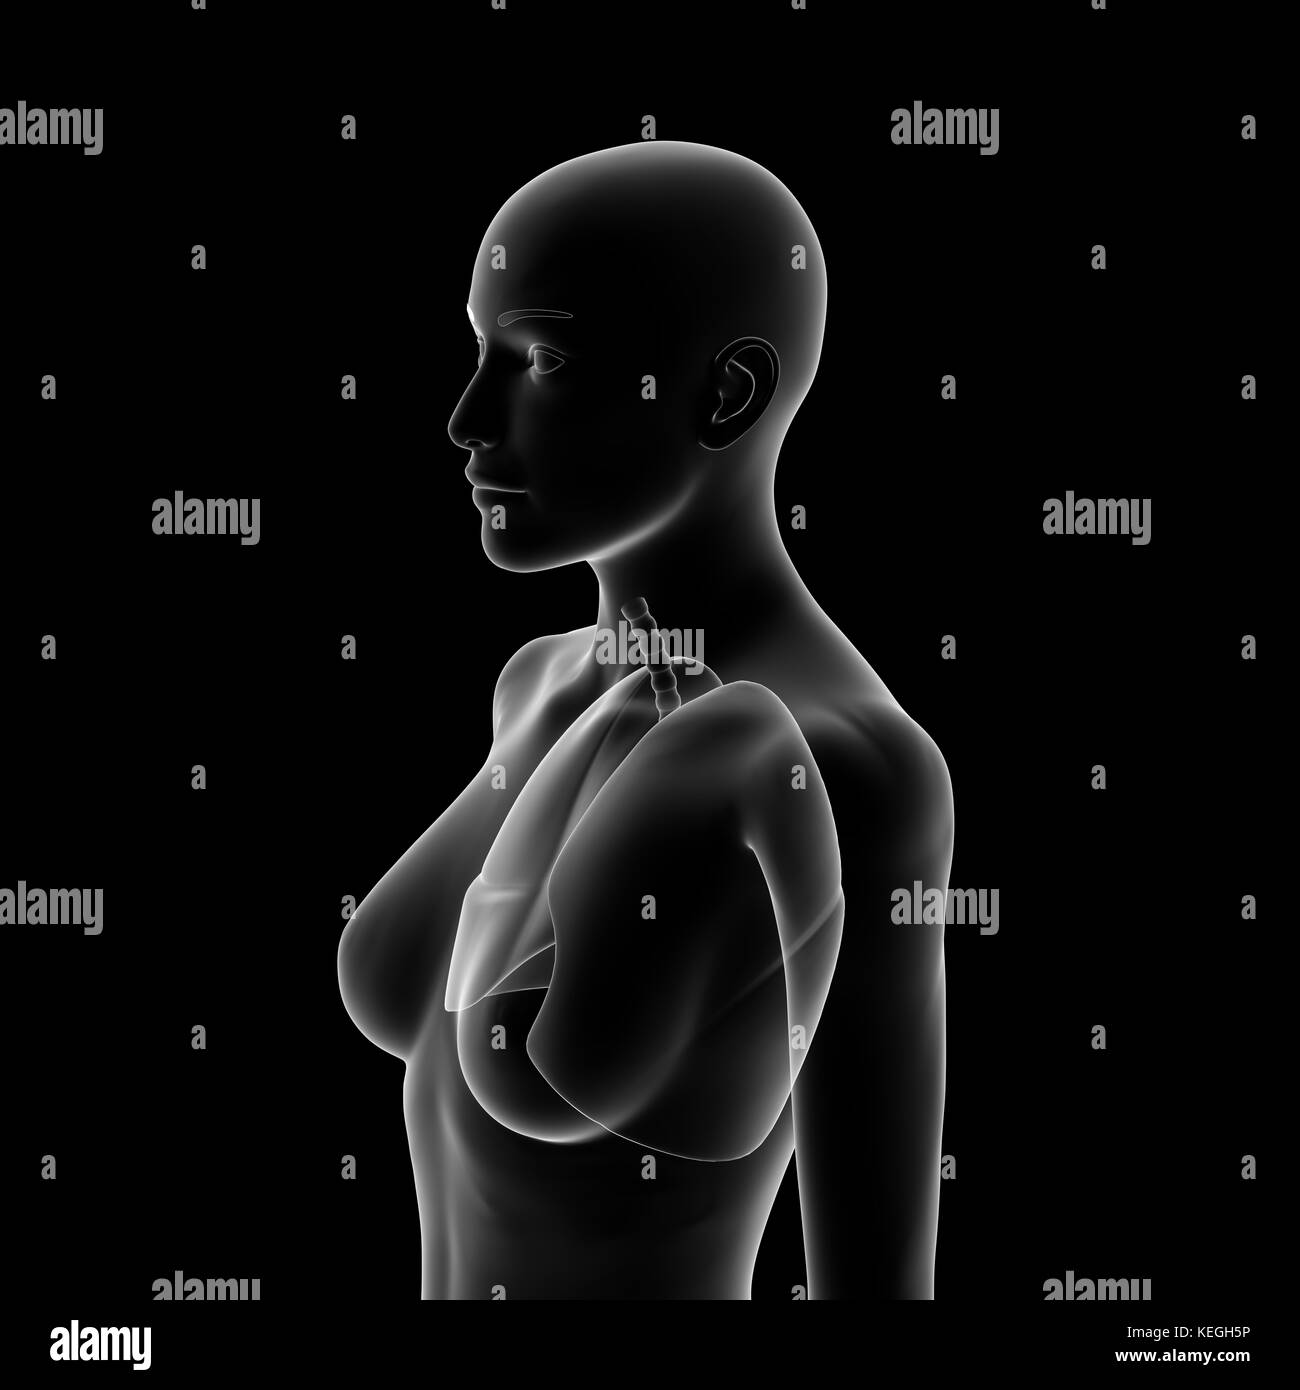 Lung, Human Female Body - Stock Image